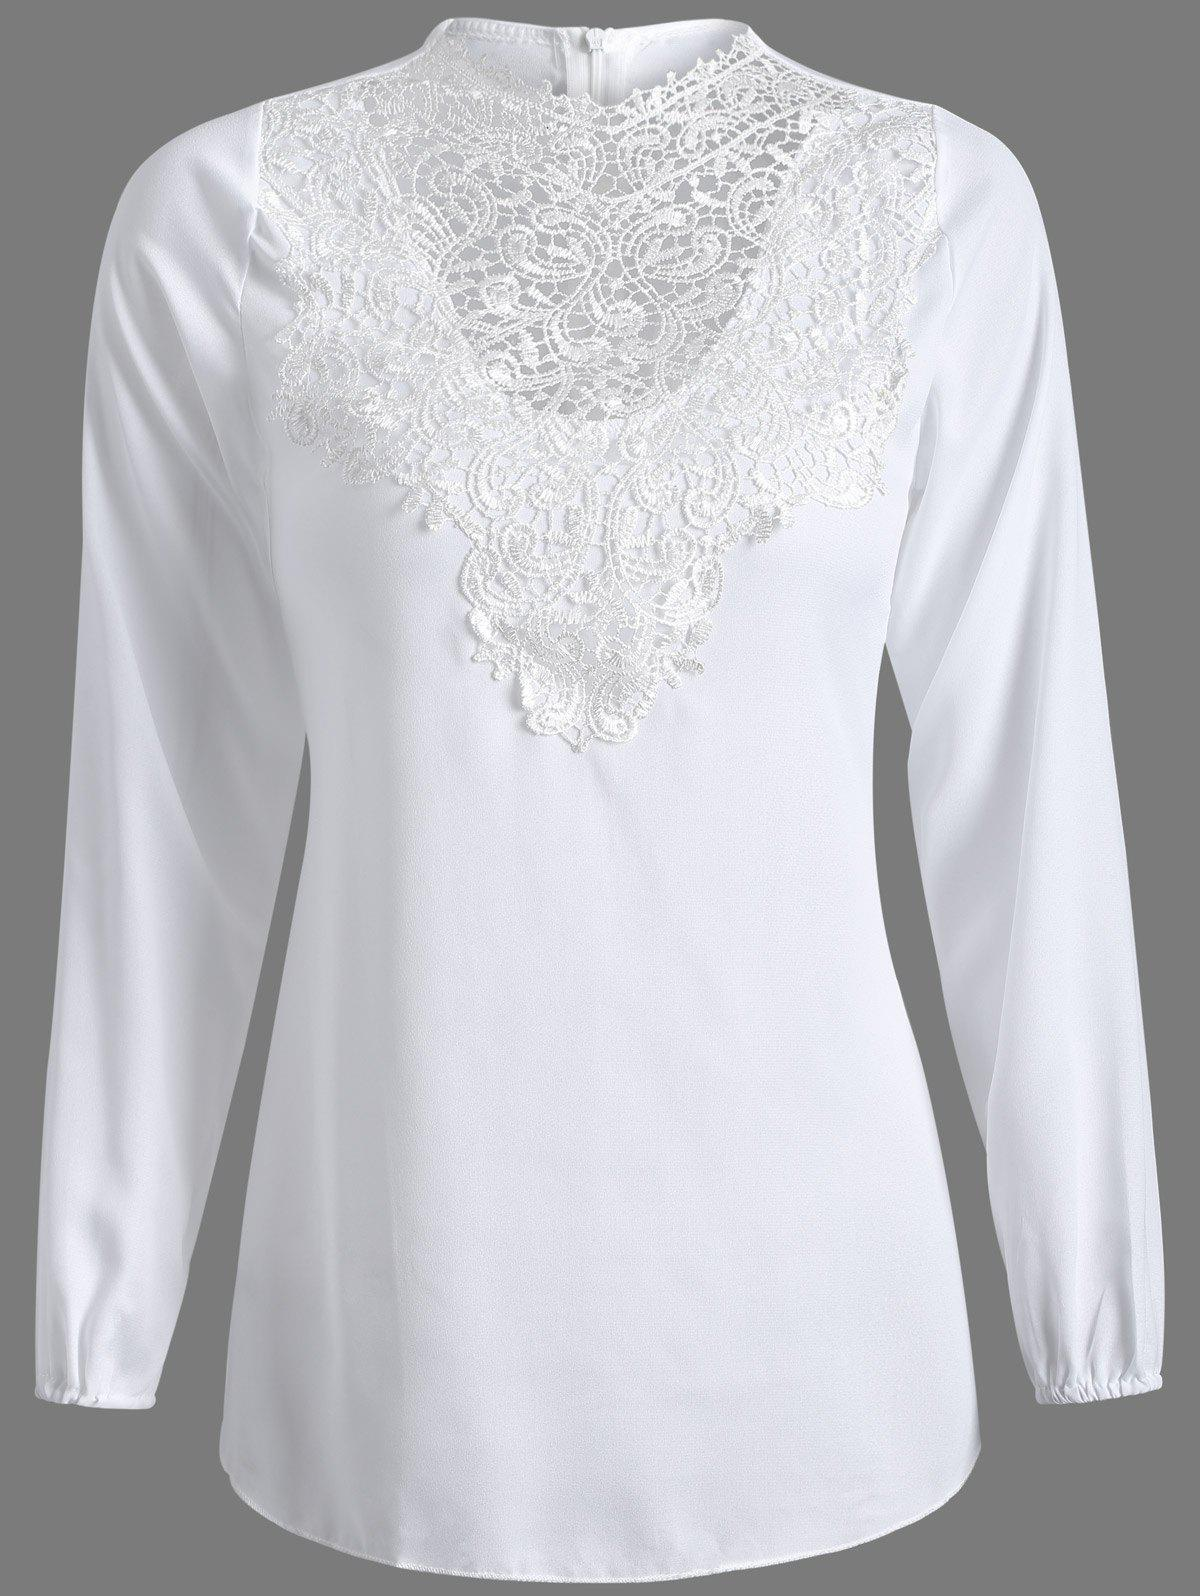 Jewel Neck Lace Spliced Long Sleeve Top - WHITE S